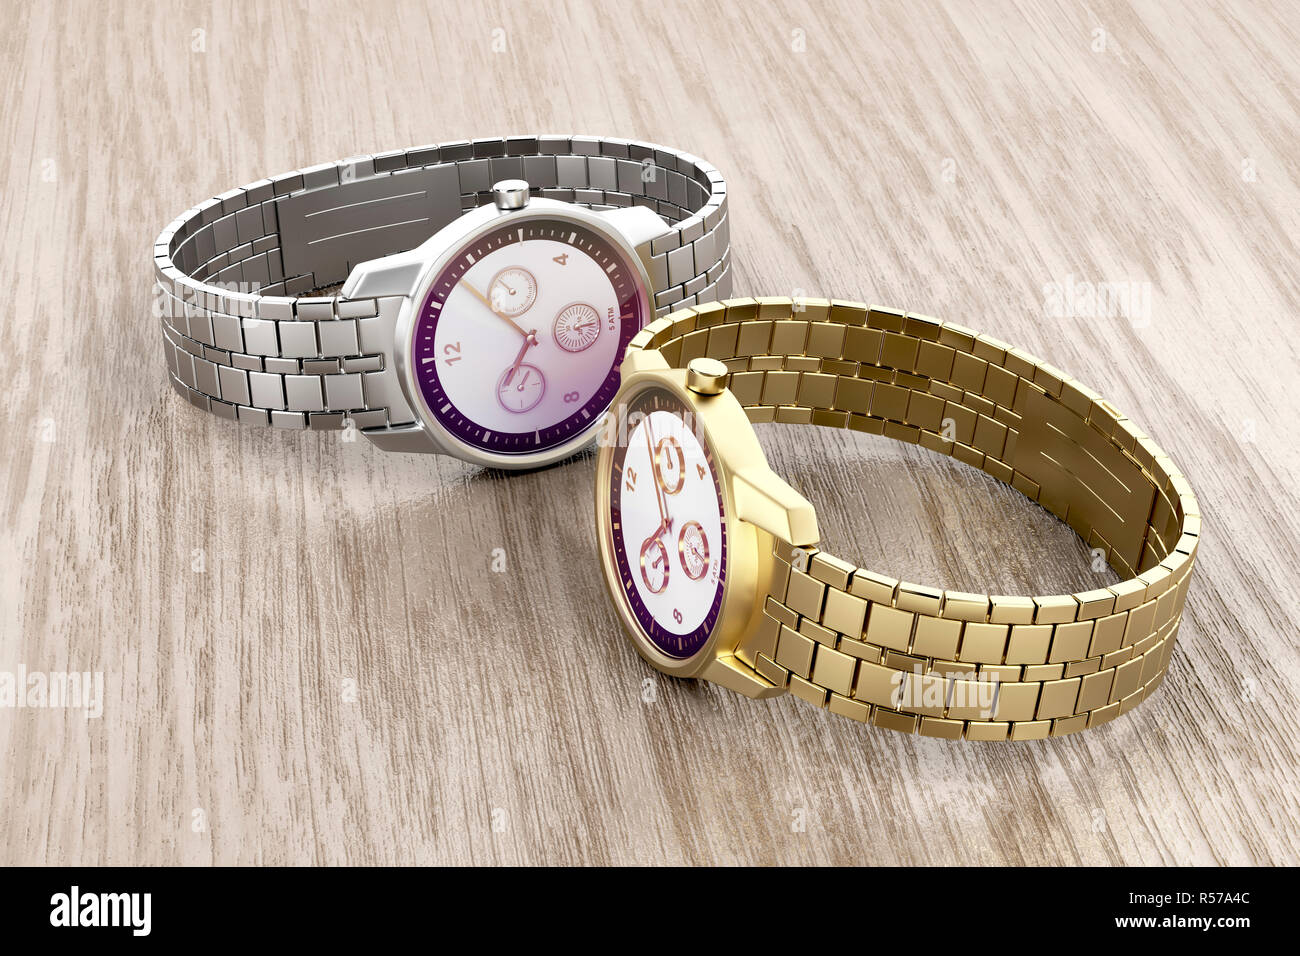 Gold and silver watches - Stock Image